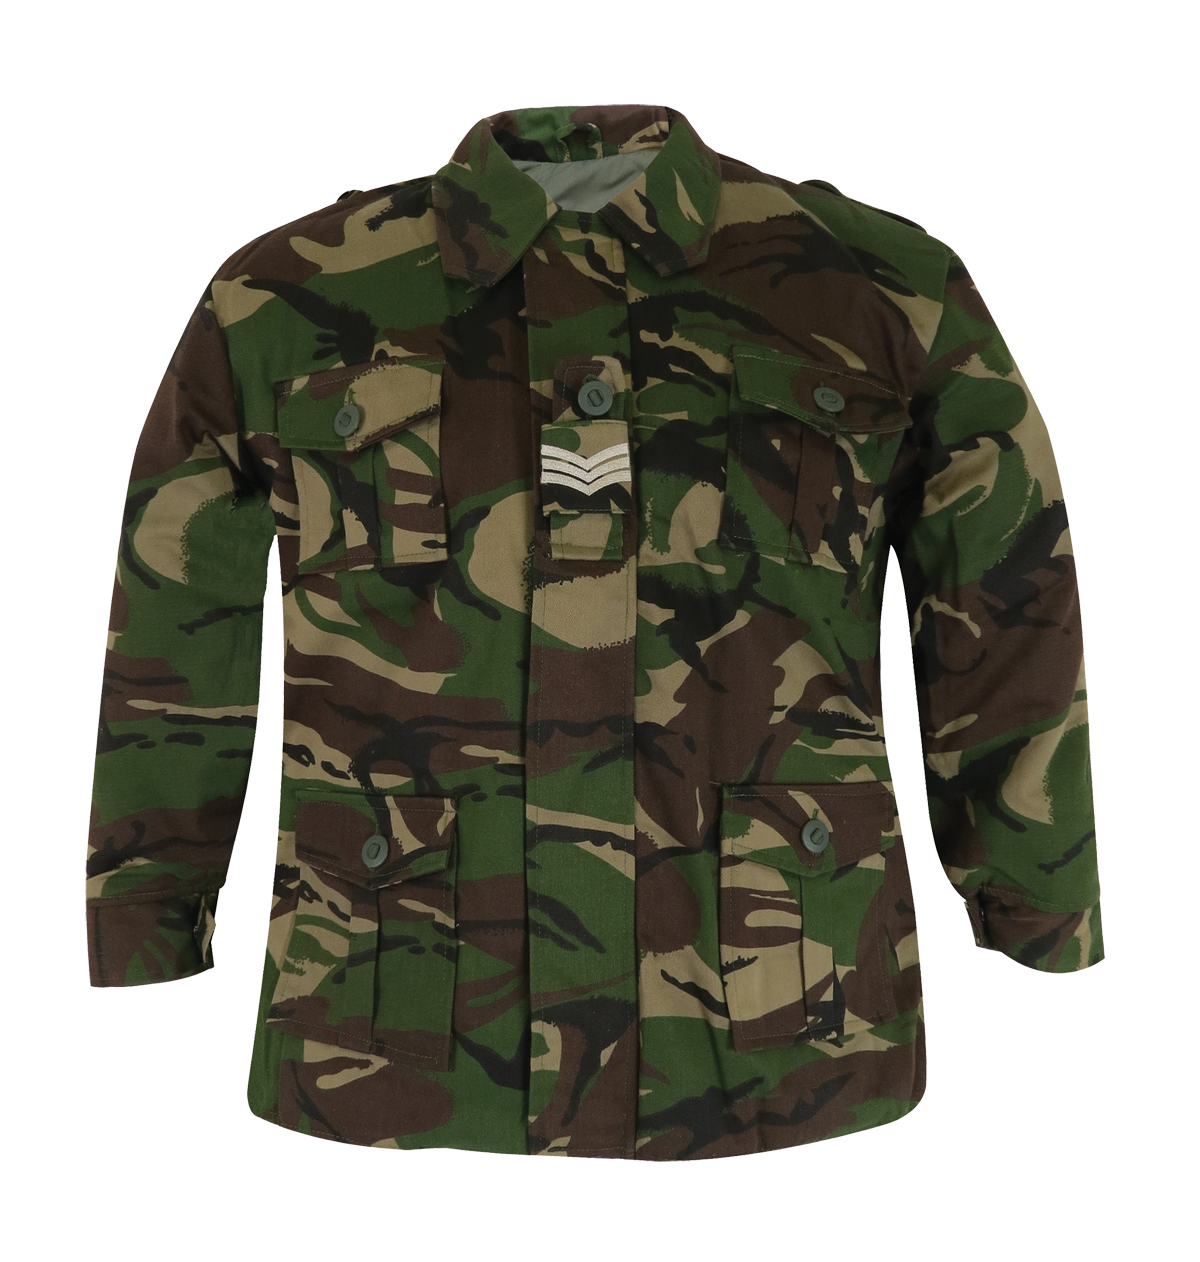 m g kids camo jacket by mean and green. Black Bedroom Furniture Sets. Home Design Ideas